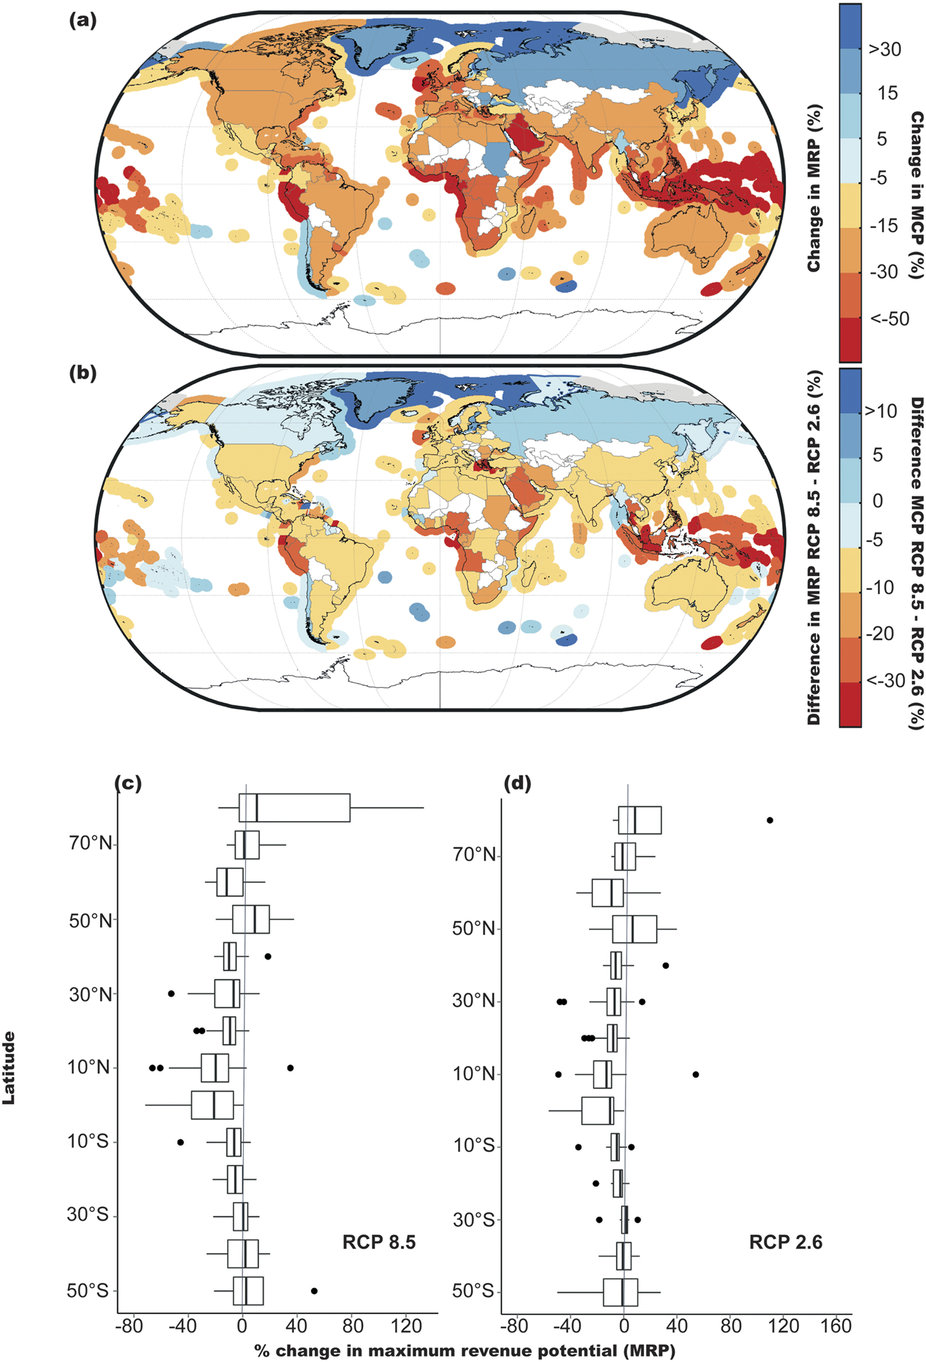 Impacts of climate change on MCP and MRP by the 2050 s (average between 2041–2060) relative to the 2000 s (average between 1991–2010)